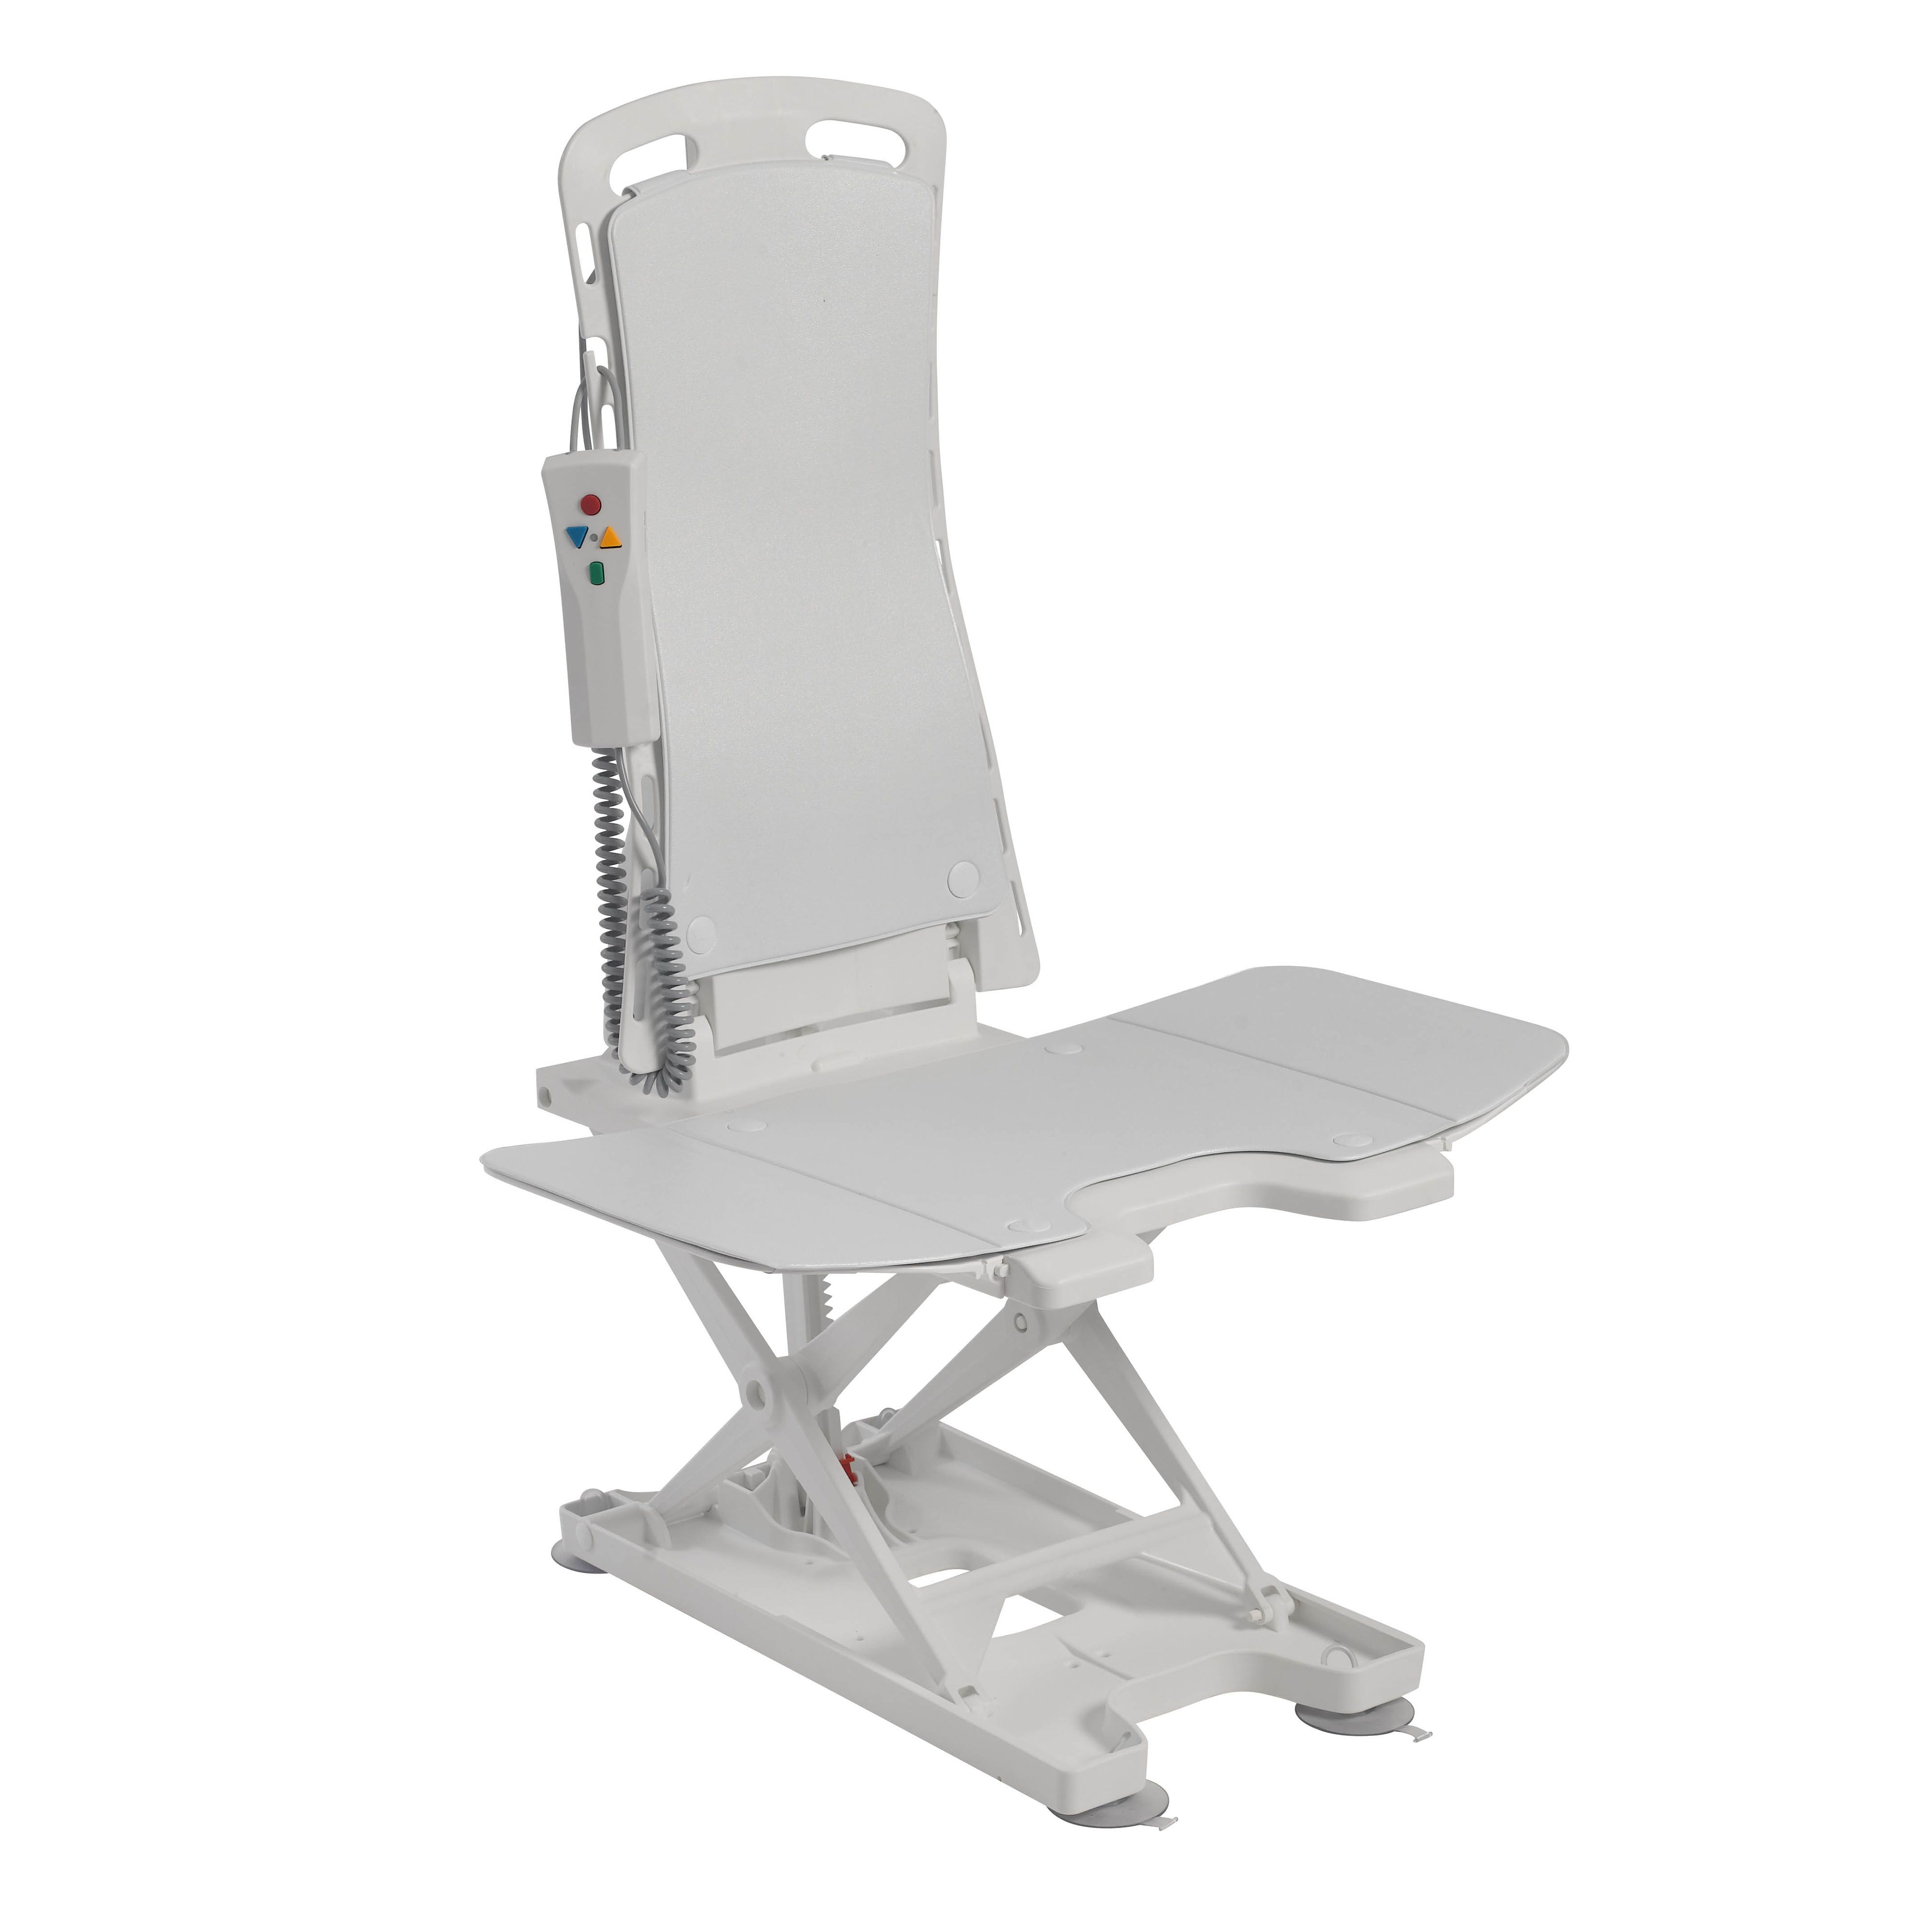 Auto Bath Tub Chair Seat Lift Electric Bath Tub Chair Lifts Are Excellent  Disability Aids For The Bathrooms. Learn More About This Amazing Design.